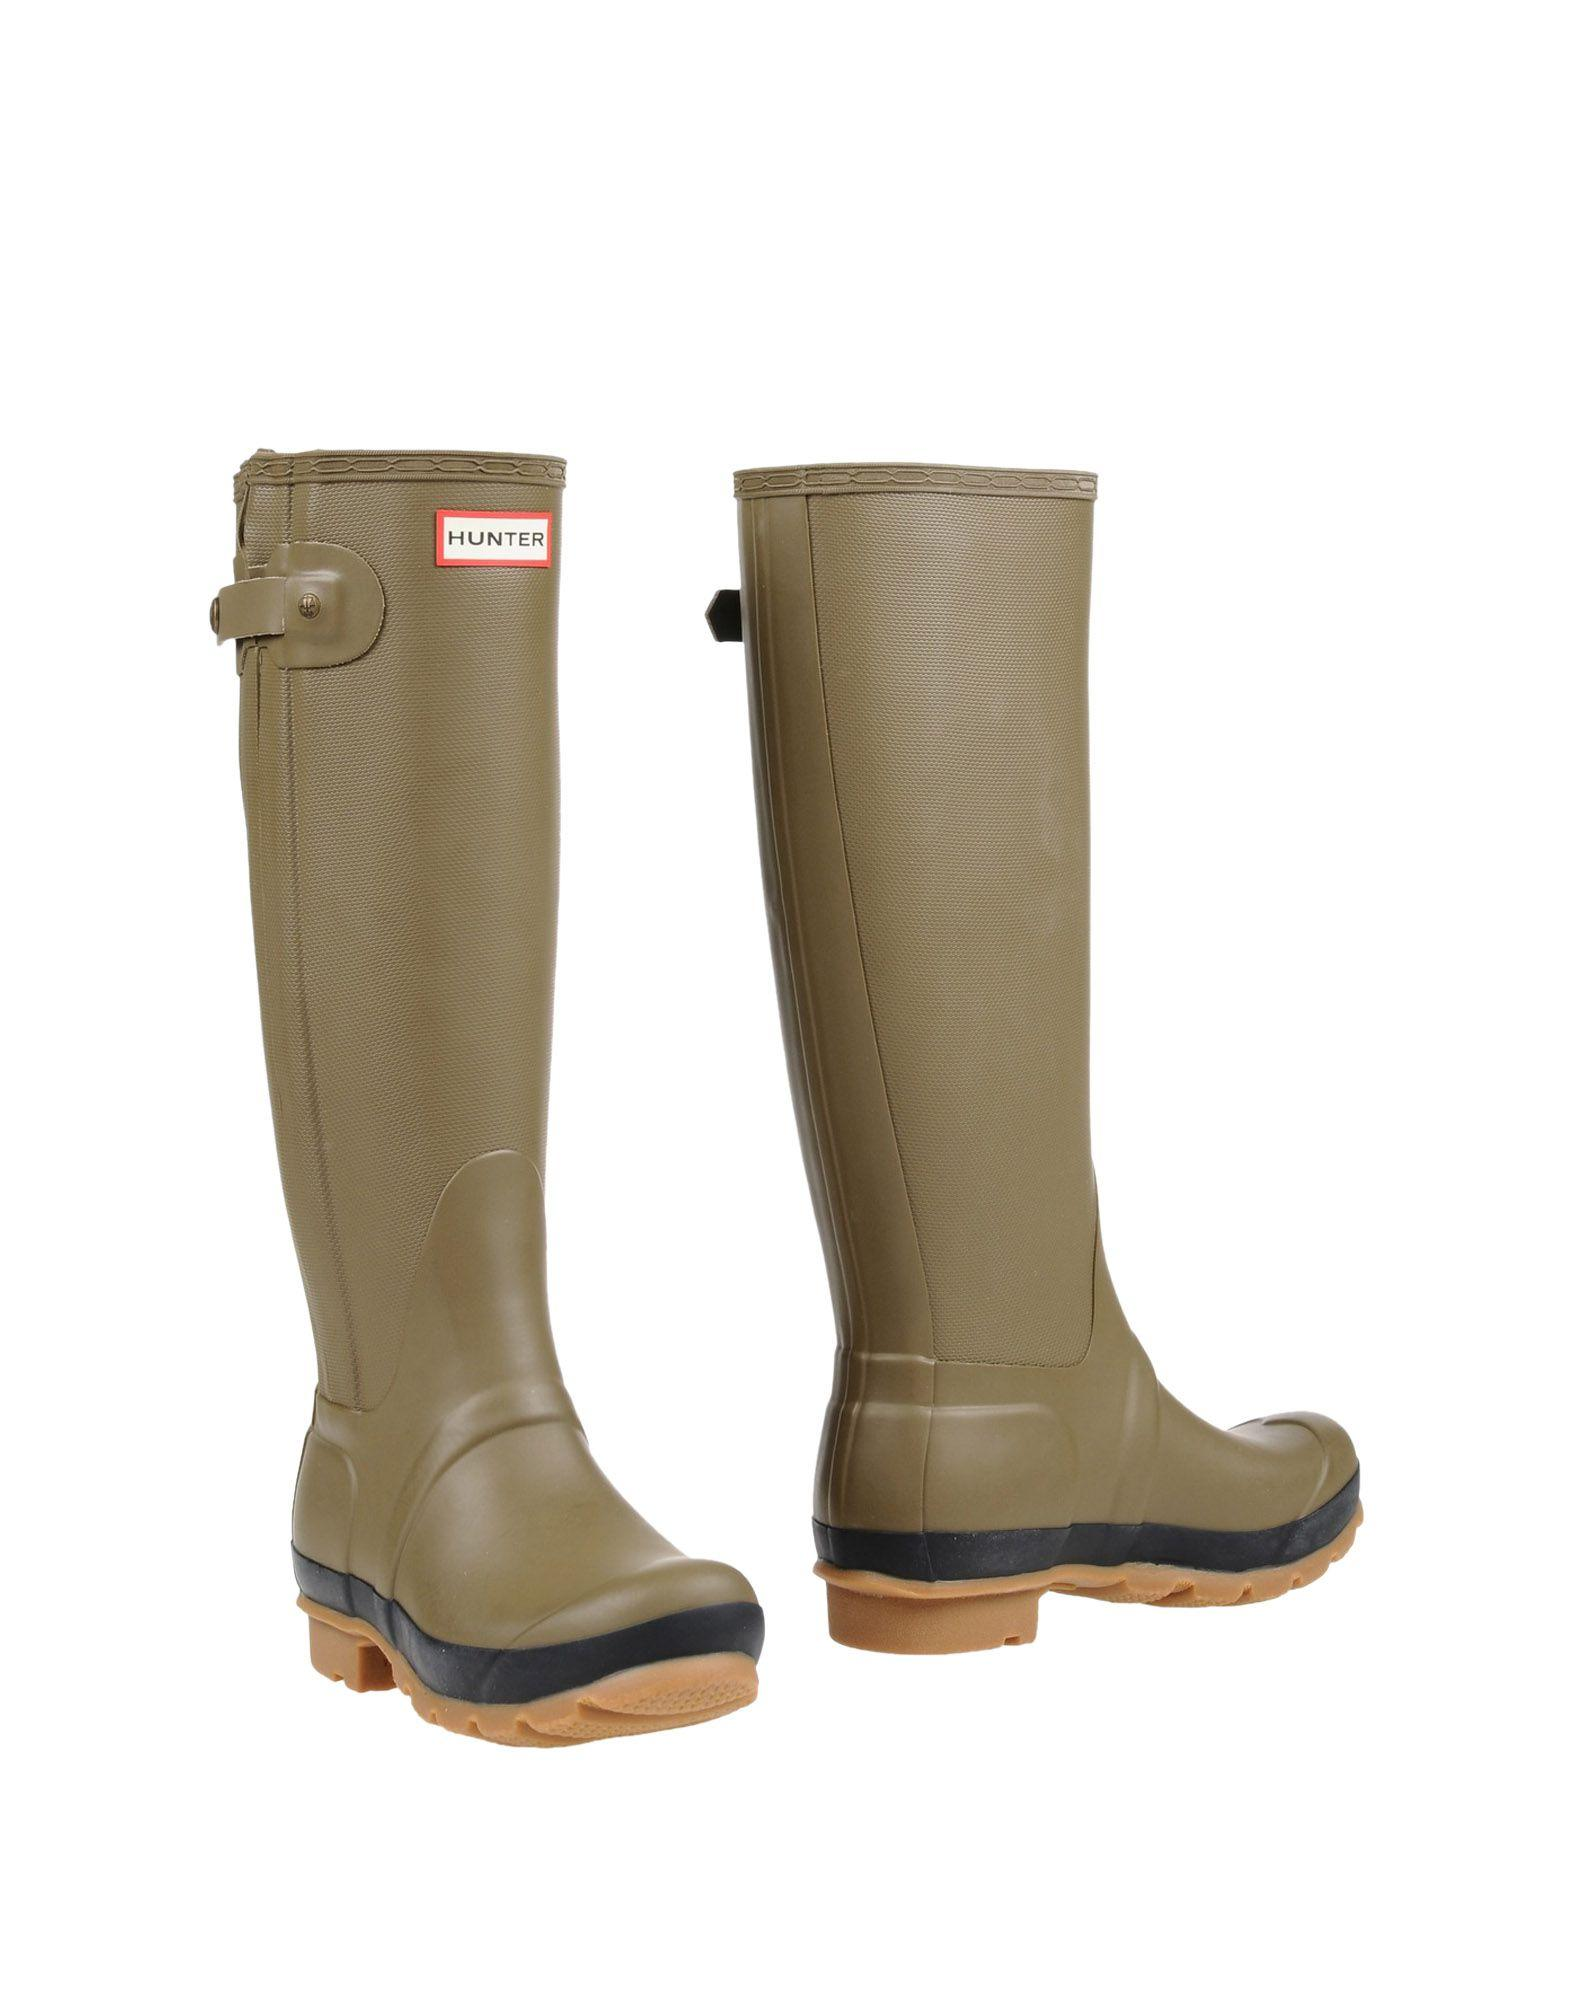 Hunter Boots In Military Green